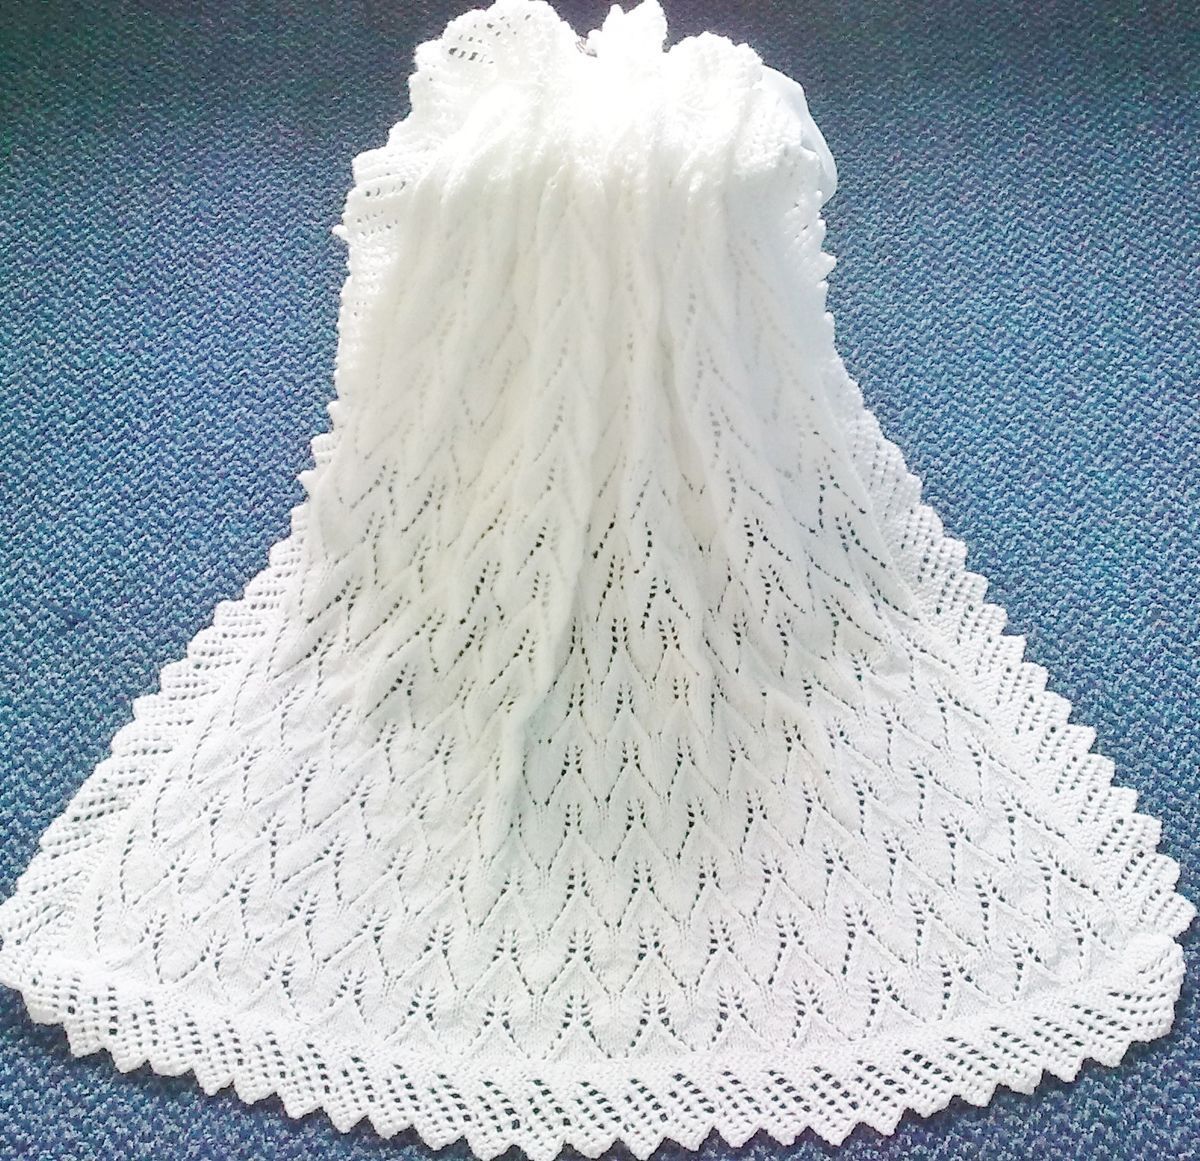 74d4b7f3b974 Stunning New Hand Knitted Baby Shawl Blanket 36 x 36 Ins